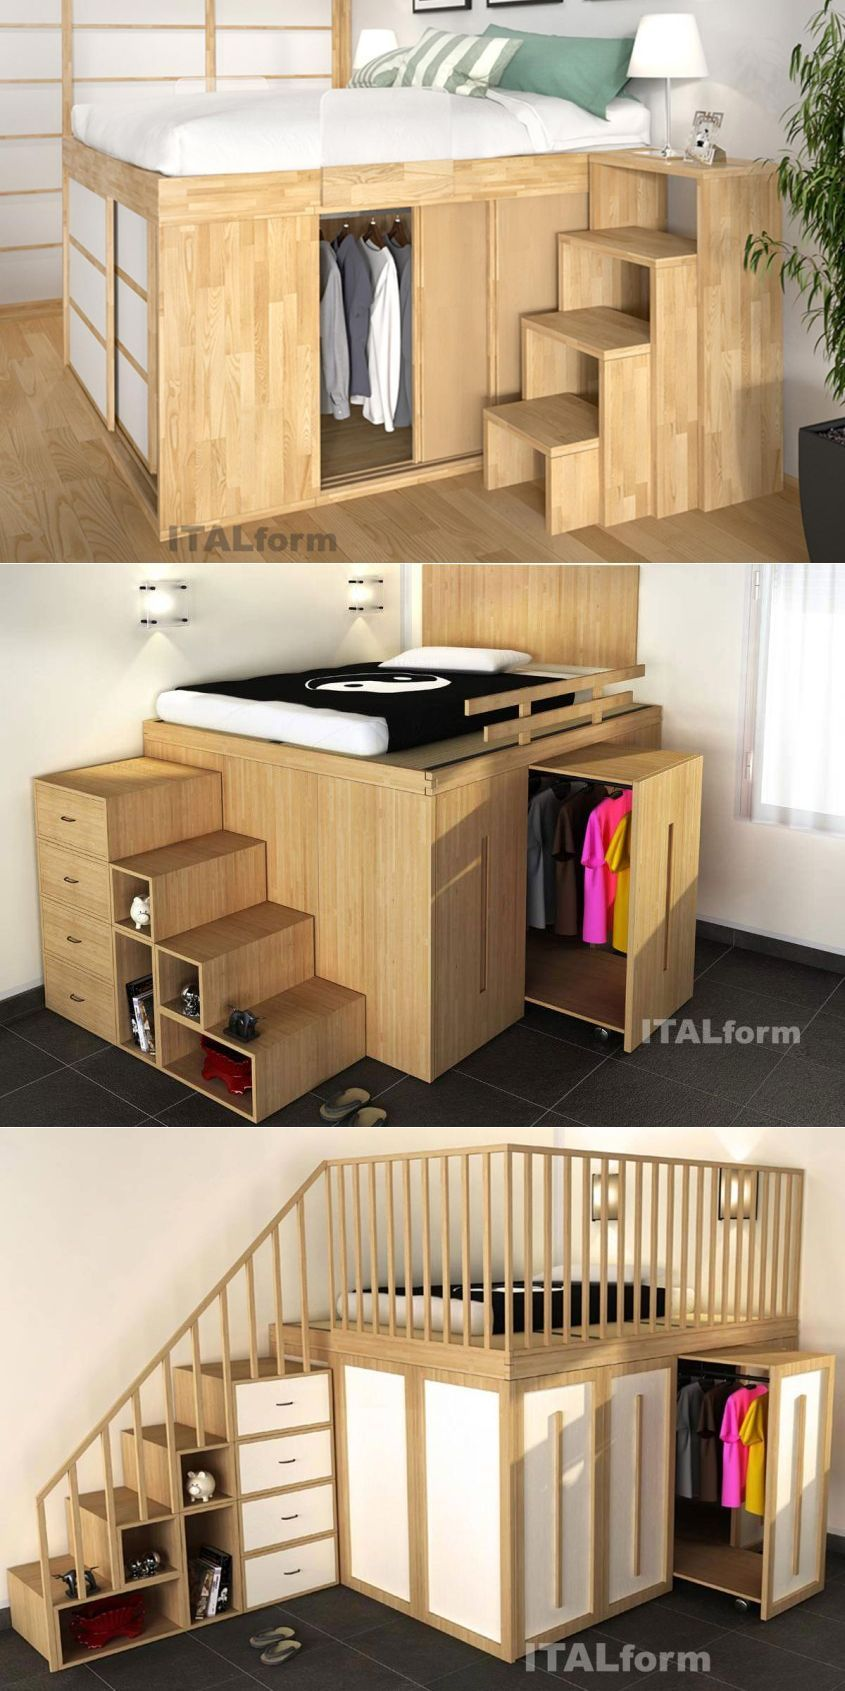 Impero Storage Beds From Italform Design Space Saving Bedroom Small Bedroom Inspiration Space Saving Furniture